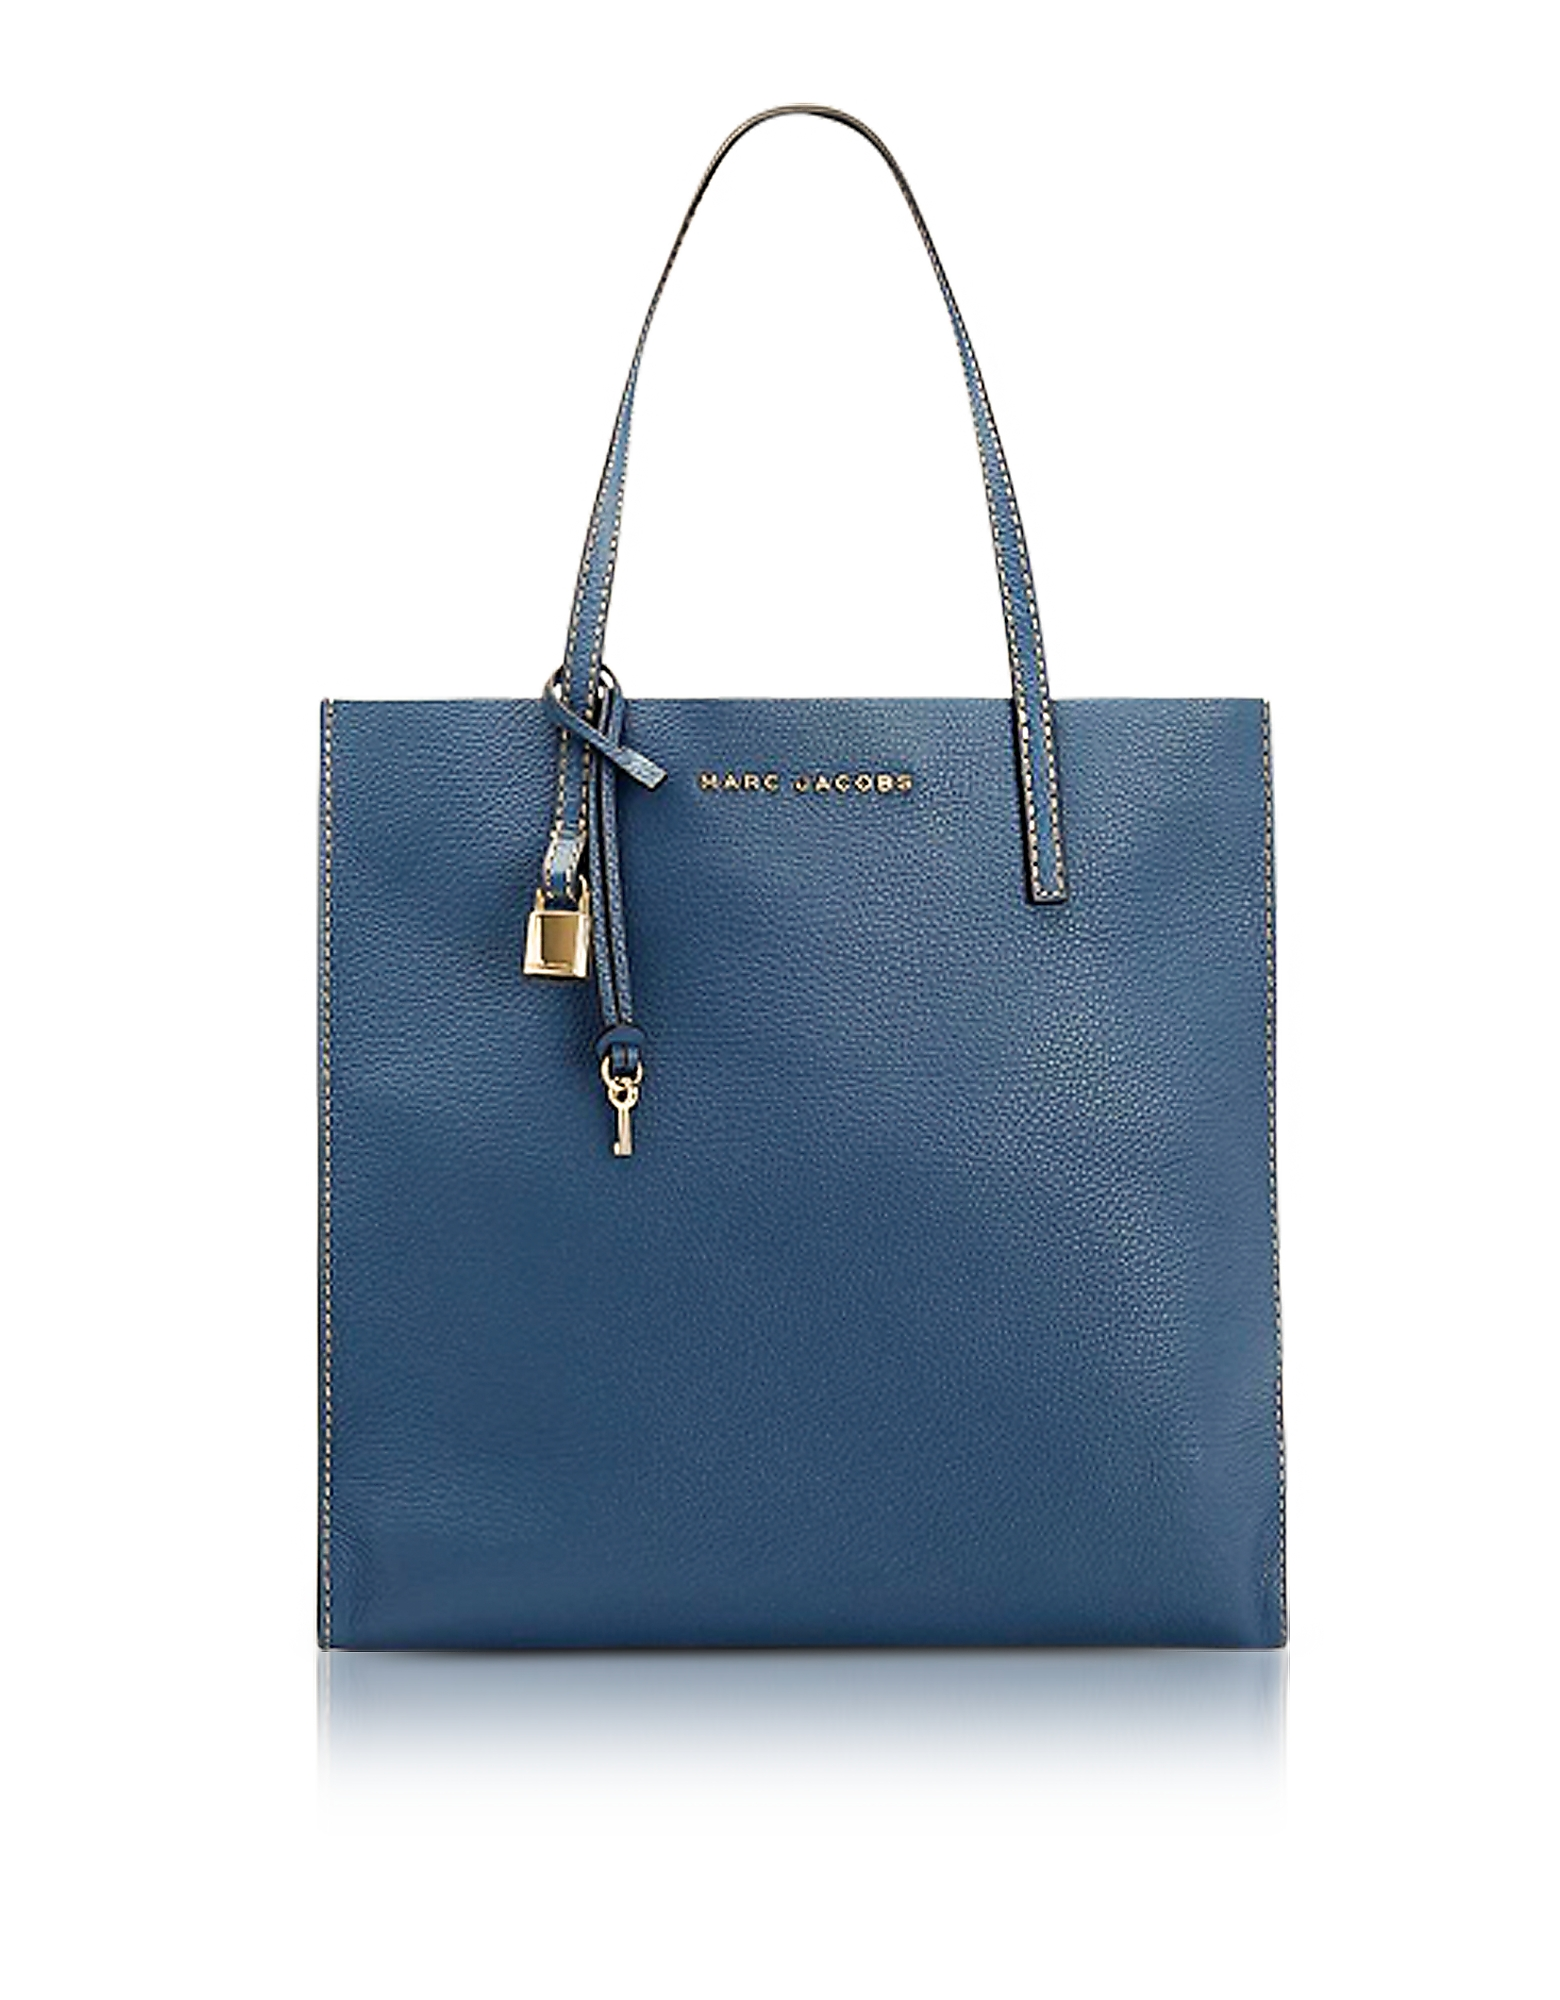 Marc Jacobs Handbags, Vintage Blue Leather The Grind Tote Bag